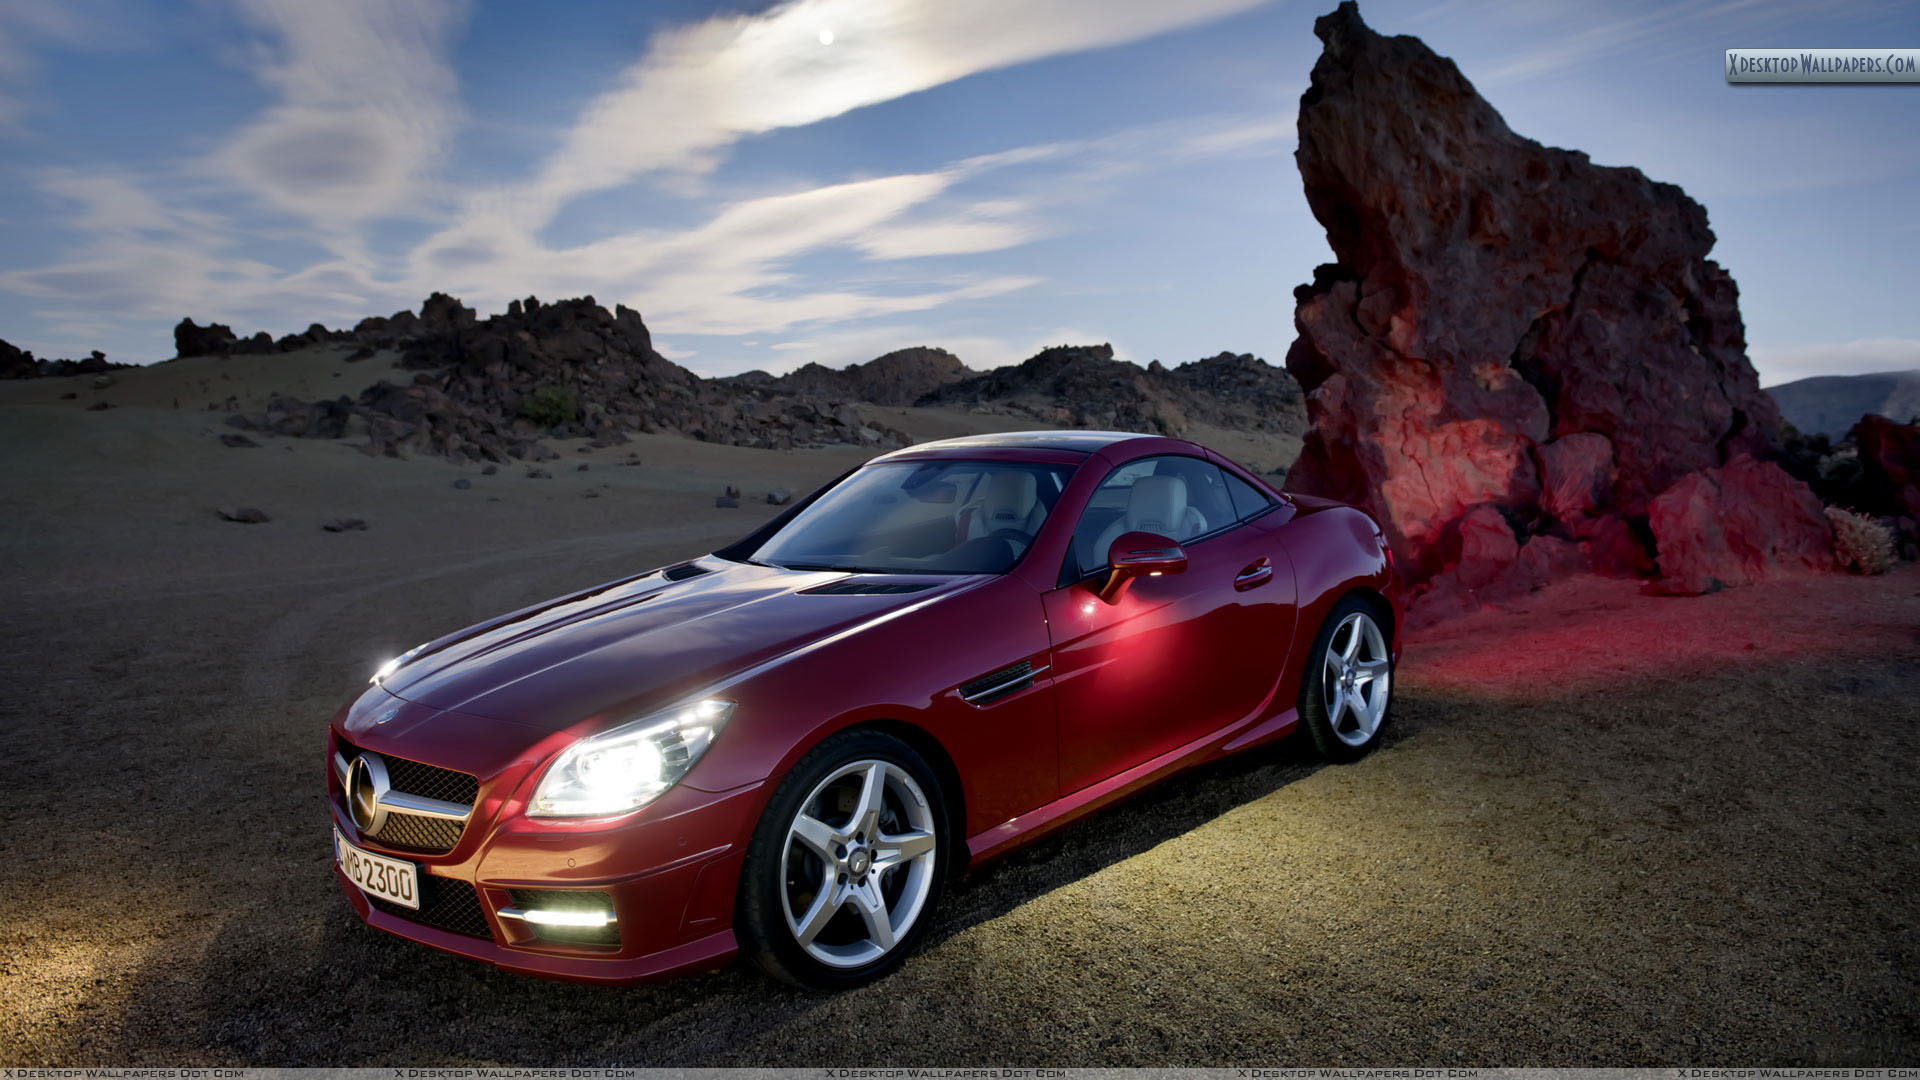 Red color mercedes benz slk 350 near mountains wallpaper for Mercedes benz red